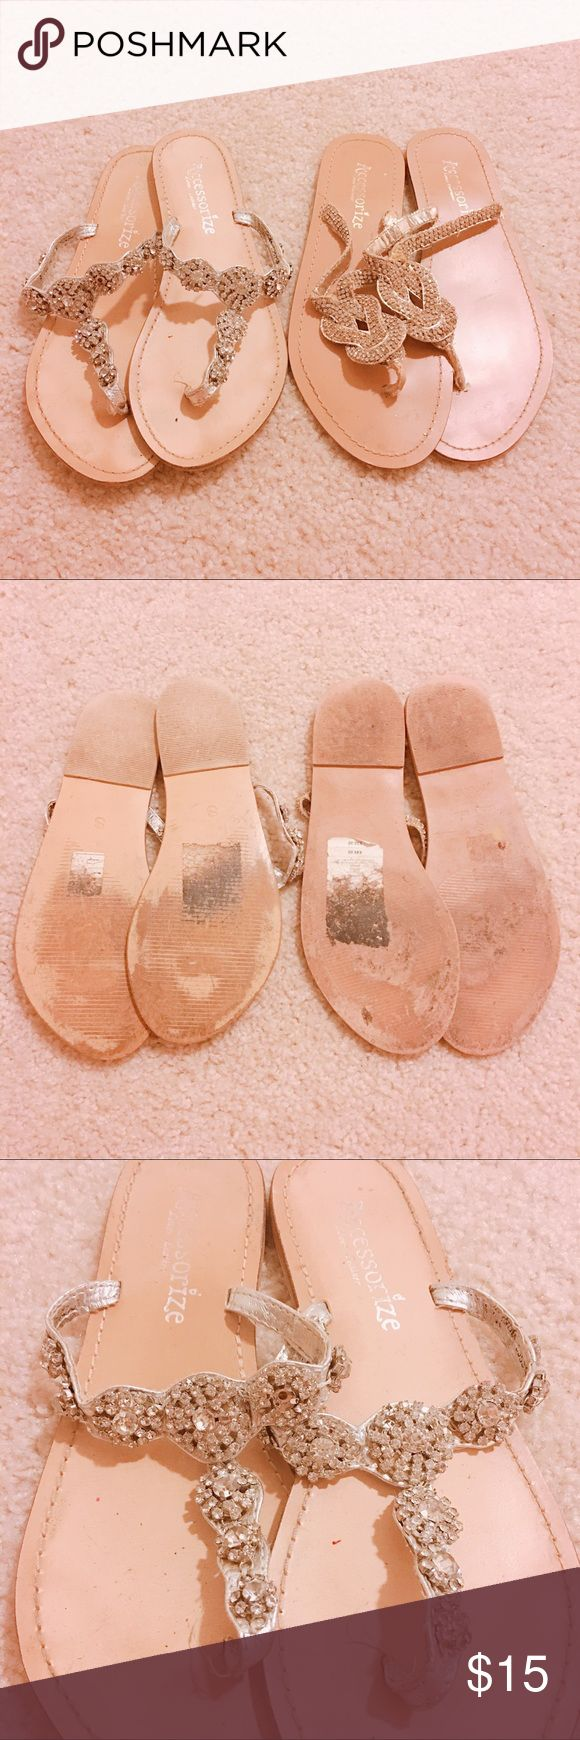 Accessorize Sandals Two Ladies Accessorize Sandals, size small, fits Size 6-7.  Missing one big crystal and one small crystal on the pair on the left.  The pair on the right is missing one tiny crystal.  All in all they are worn but get great compliments. Accessorize Shoes Sandals